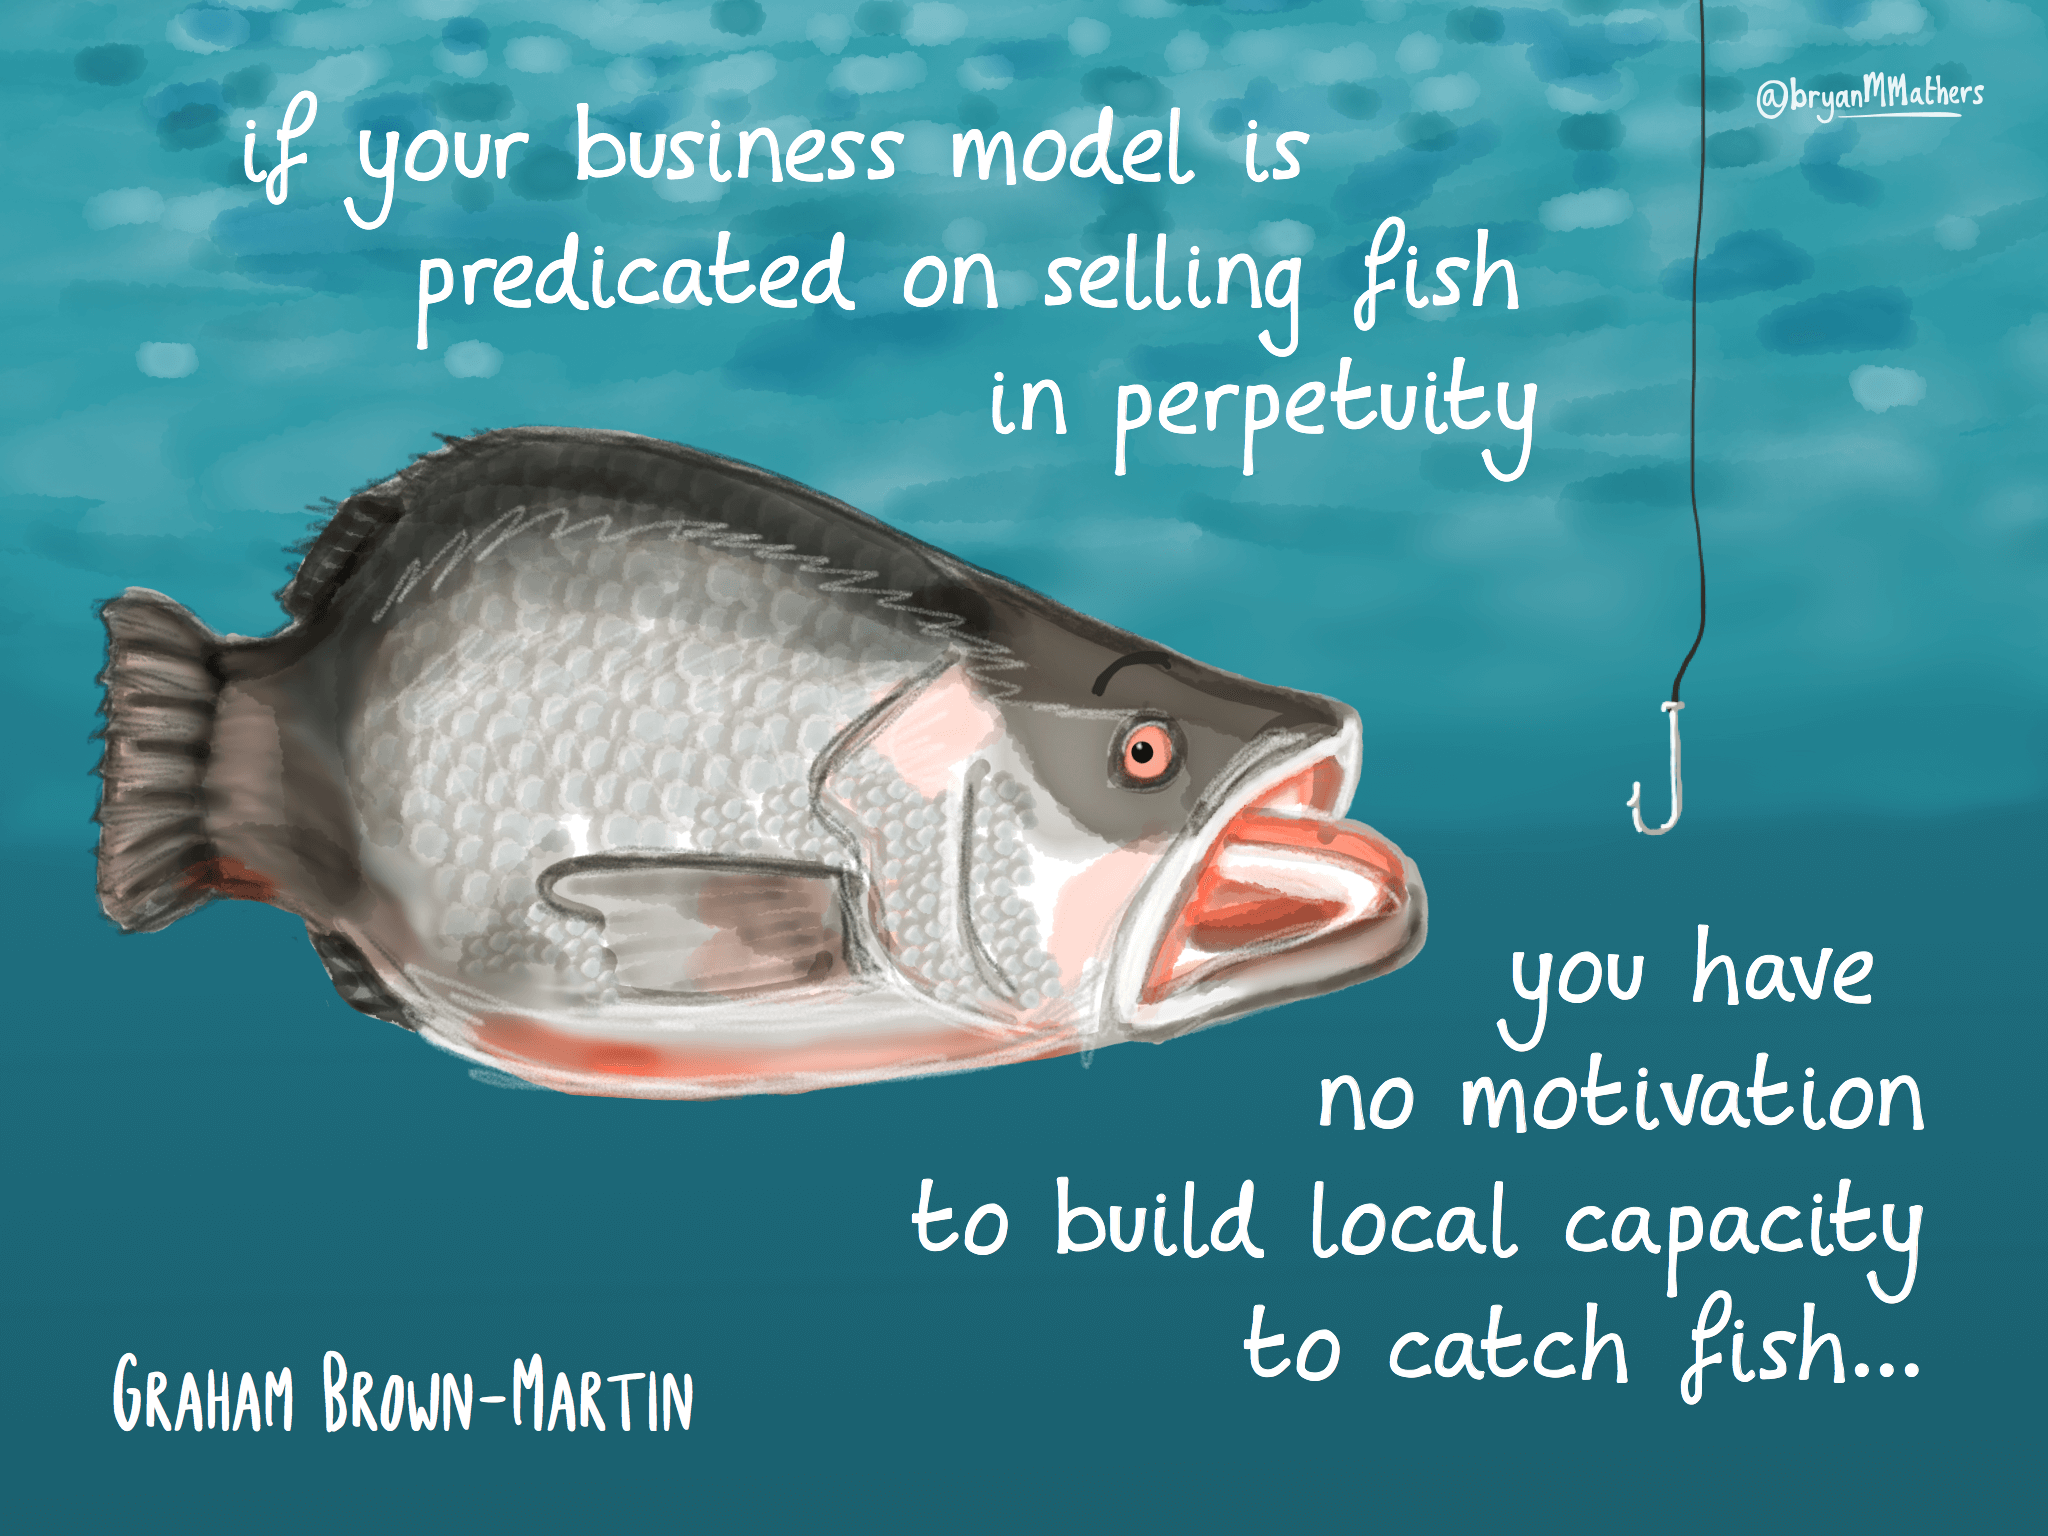 A fishy business model…